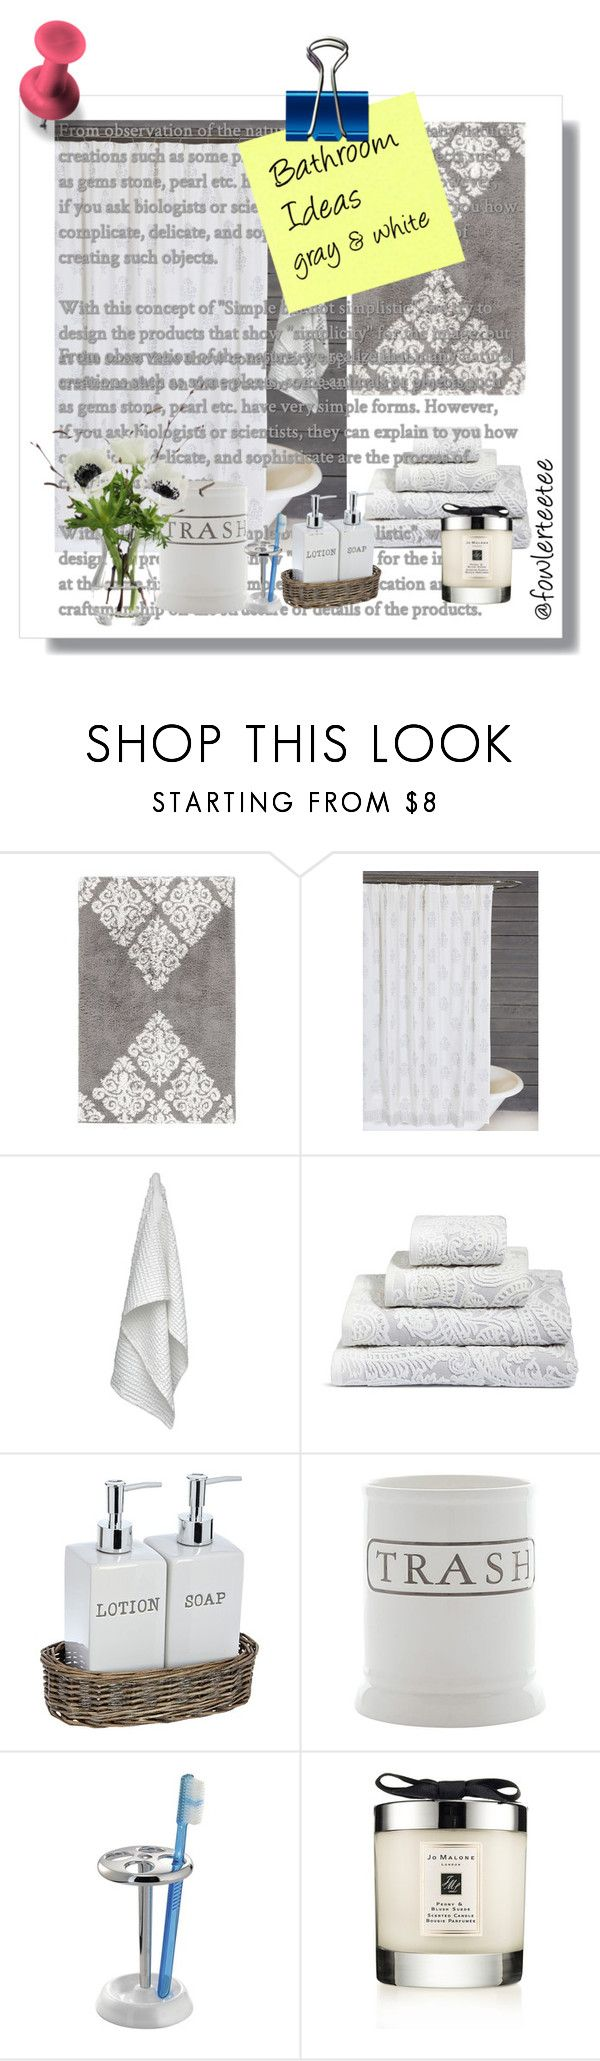 """""""Bathroom Concept"""" by fowlerteetee ❤ liked on Polyvore featuring interior, interiors, interior design, home, home decor, interior decorating, Pottery Barn, Pom Pom at Home, The Organic Company and Jo Malone"""